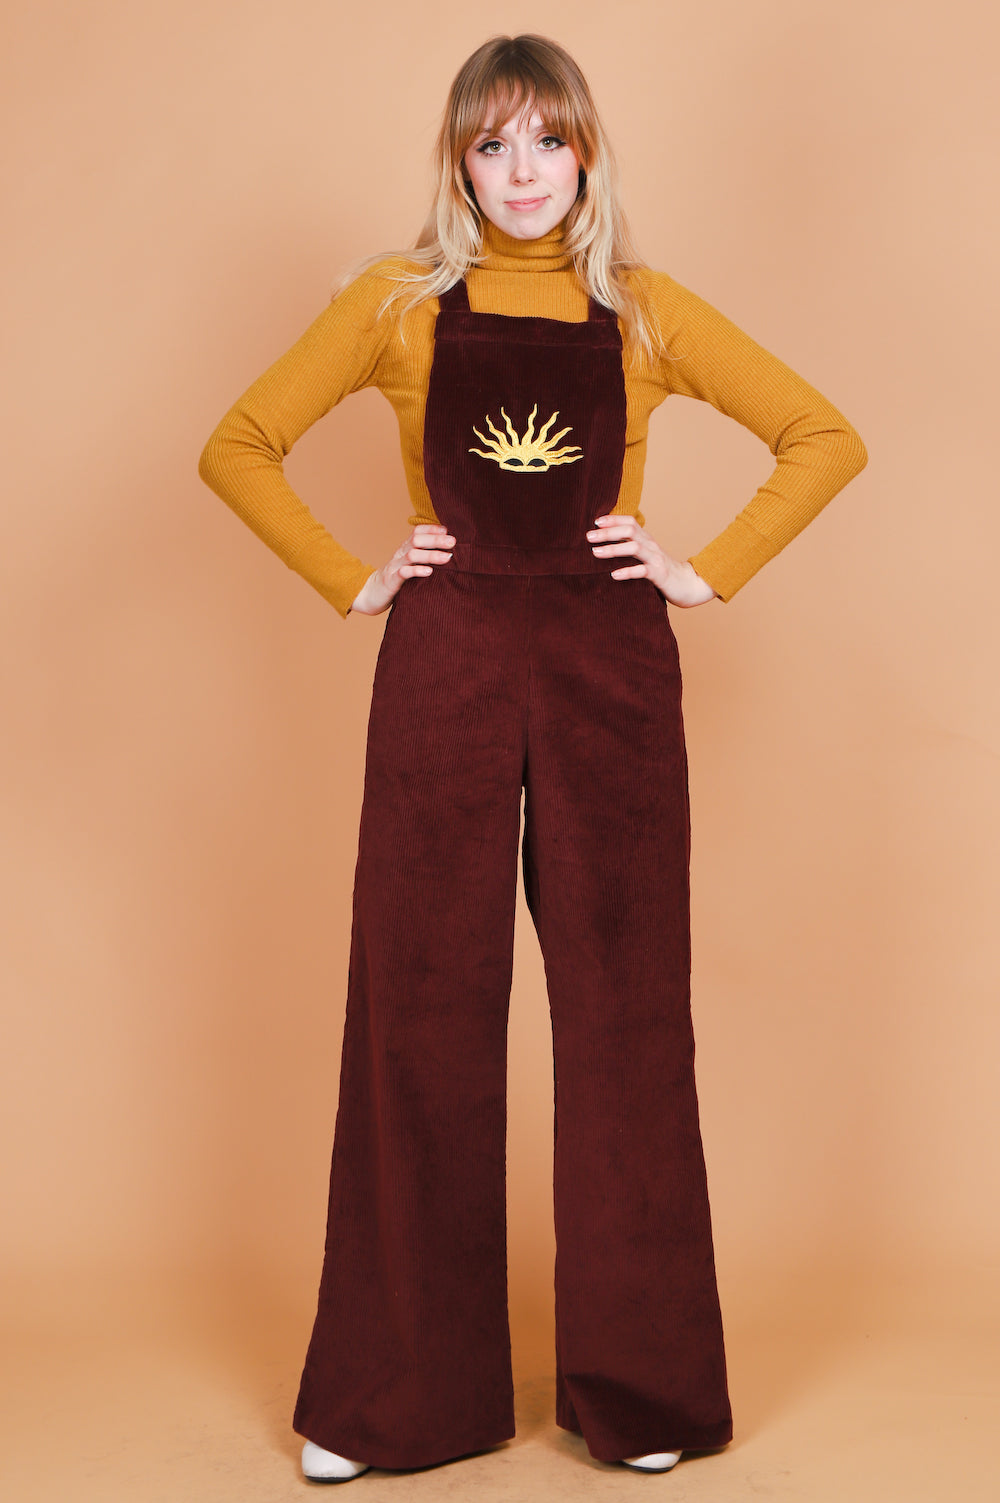 Vintage 1970's Rising Sun Corduroy Overalls